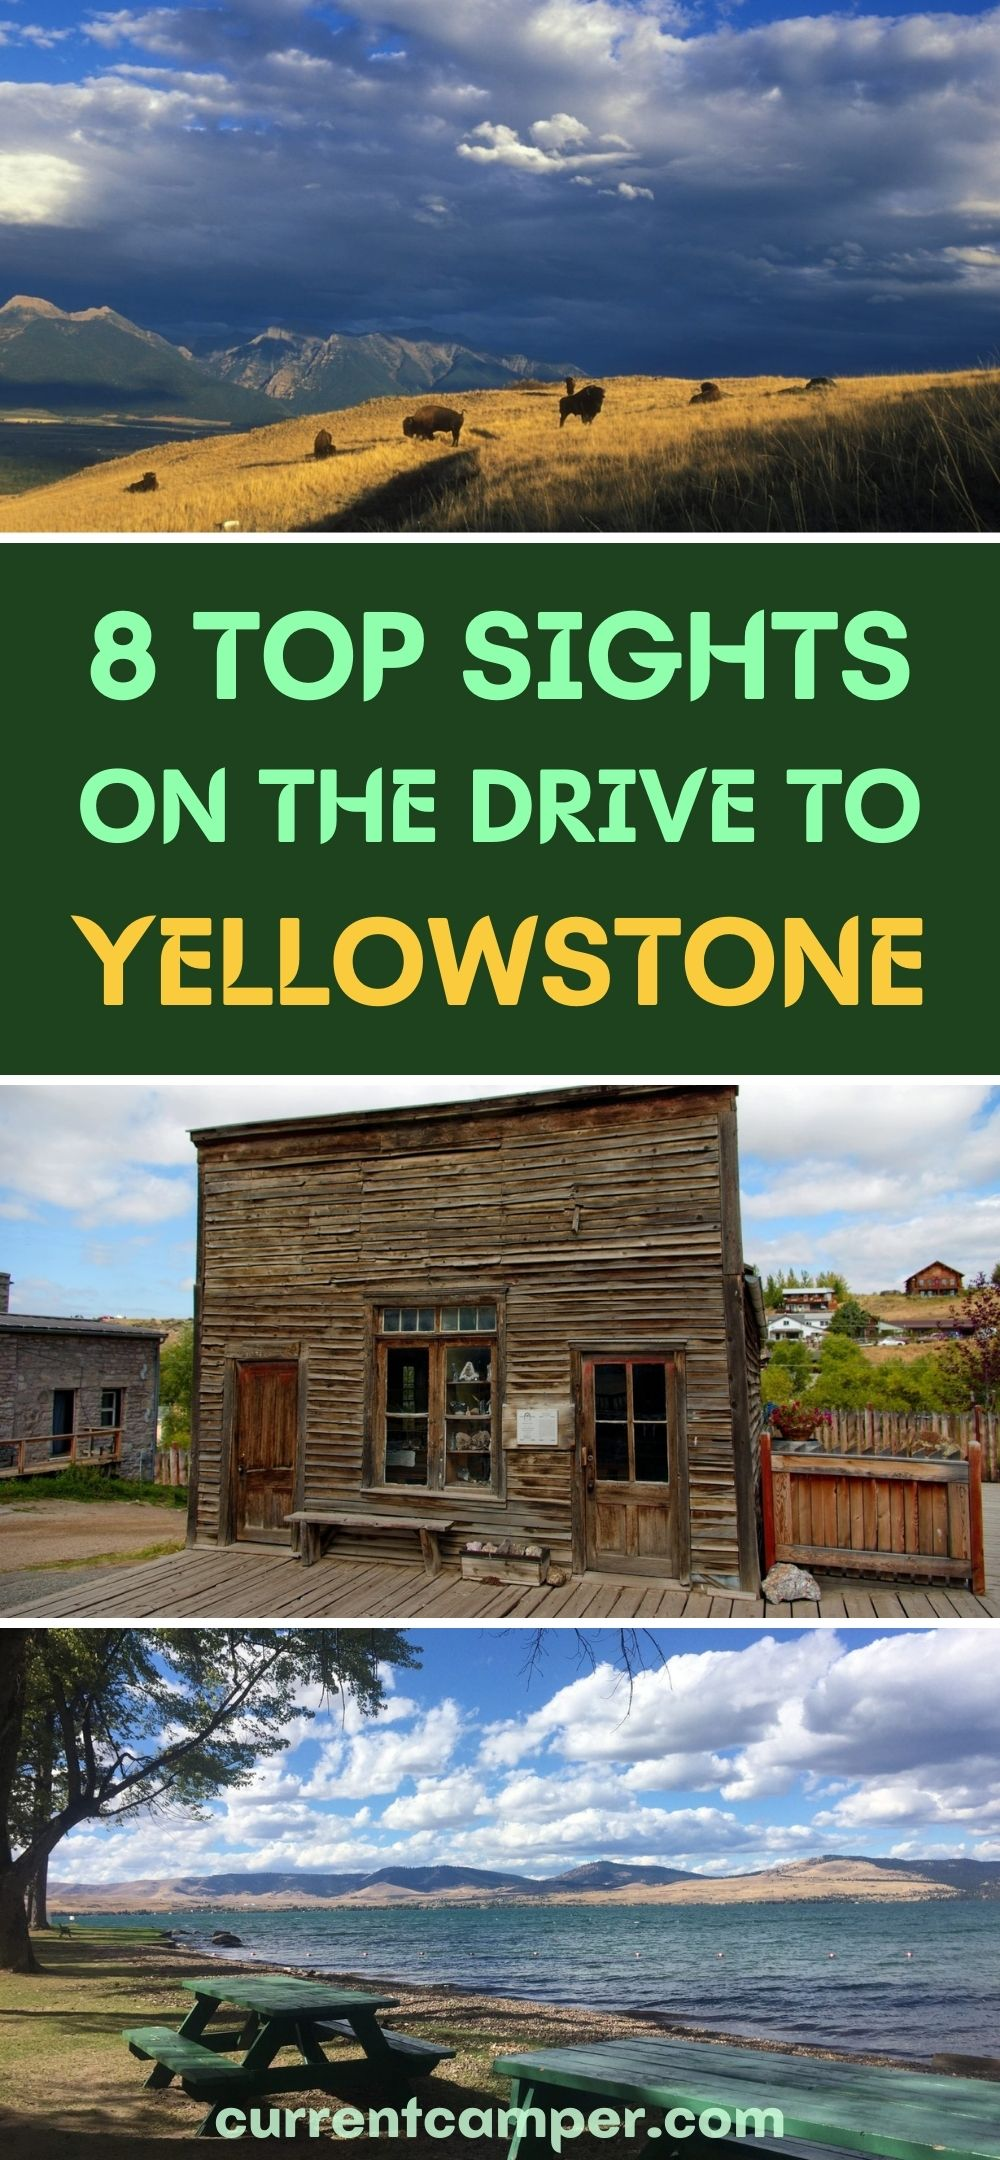 8 top sights on the drive to yellowstone national park